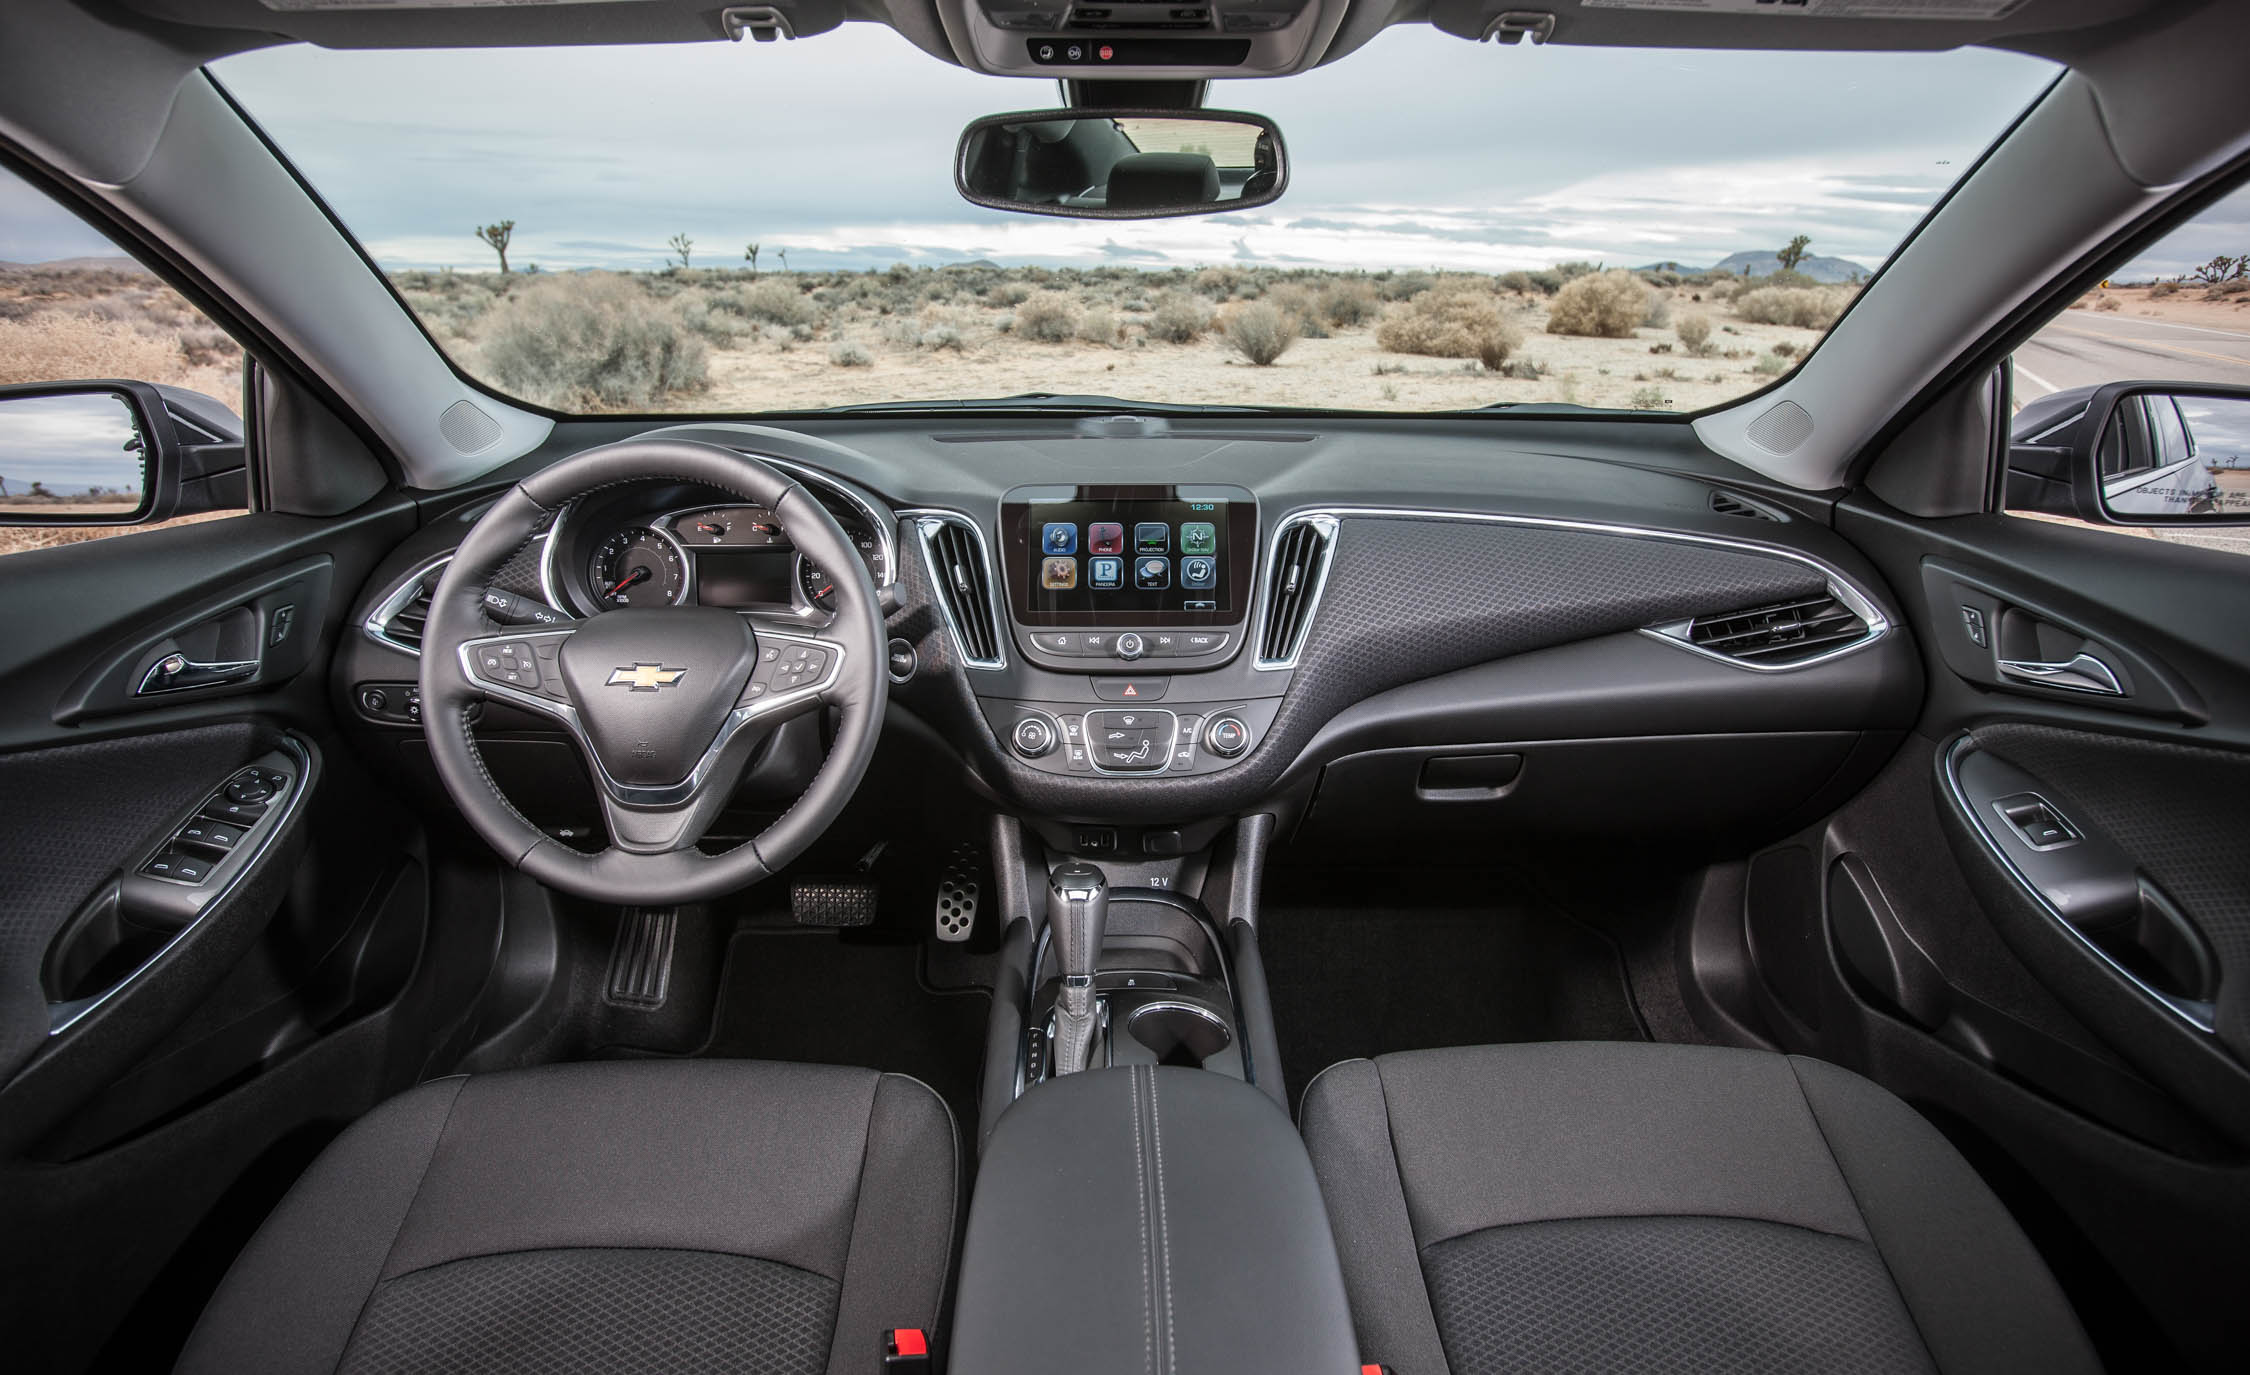 2016 Chevrolet Malibu | Cars Exclusive Videos and Photos ...